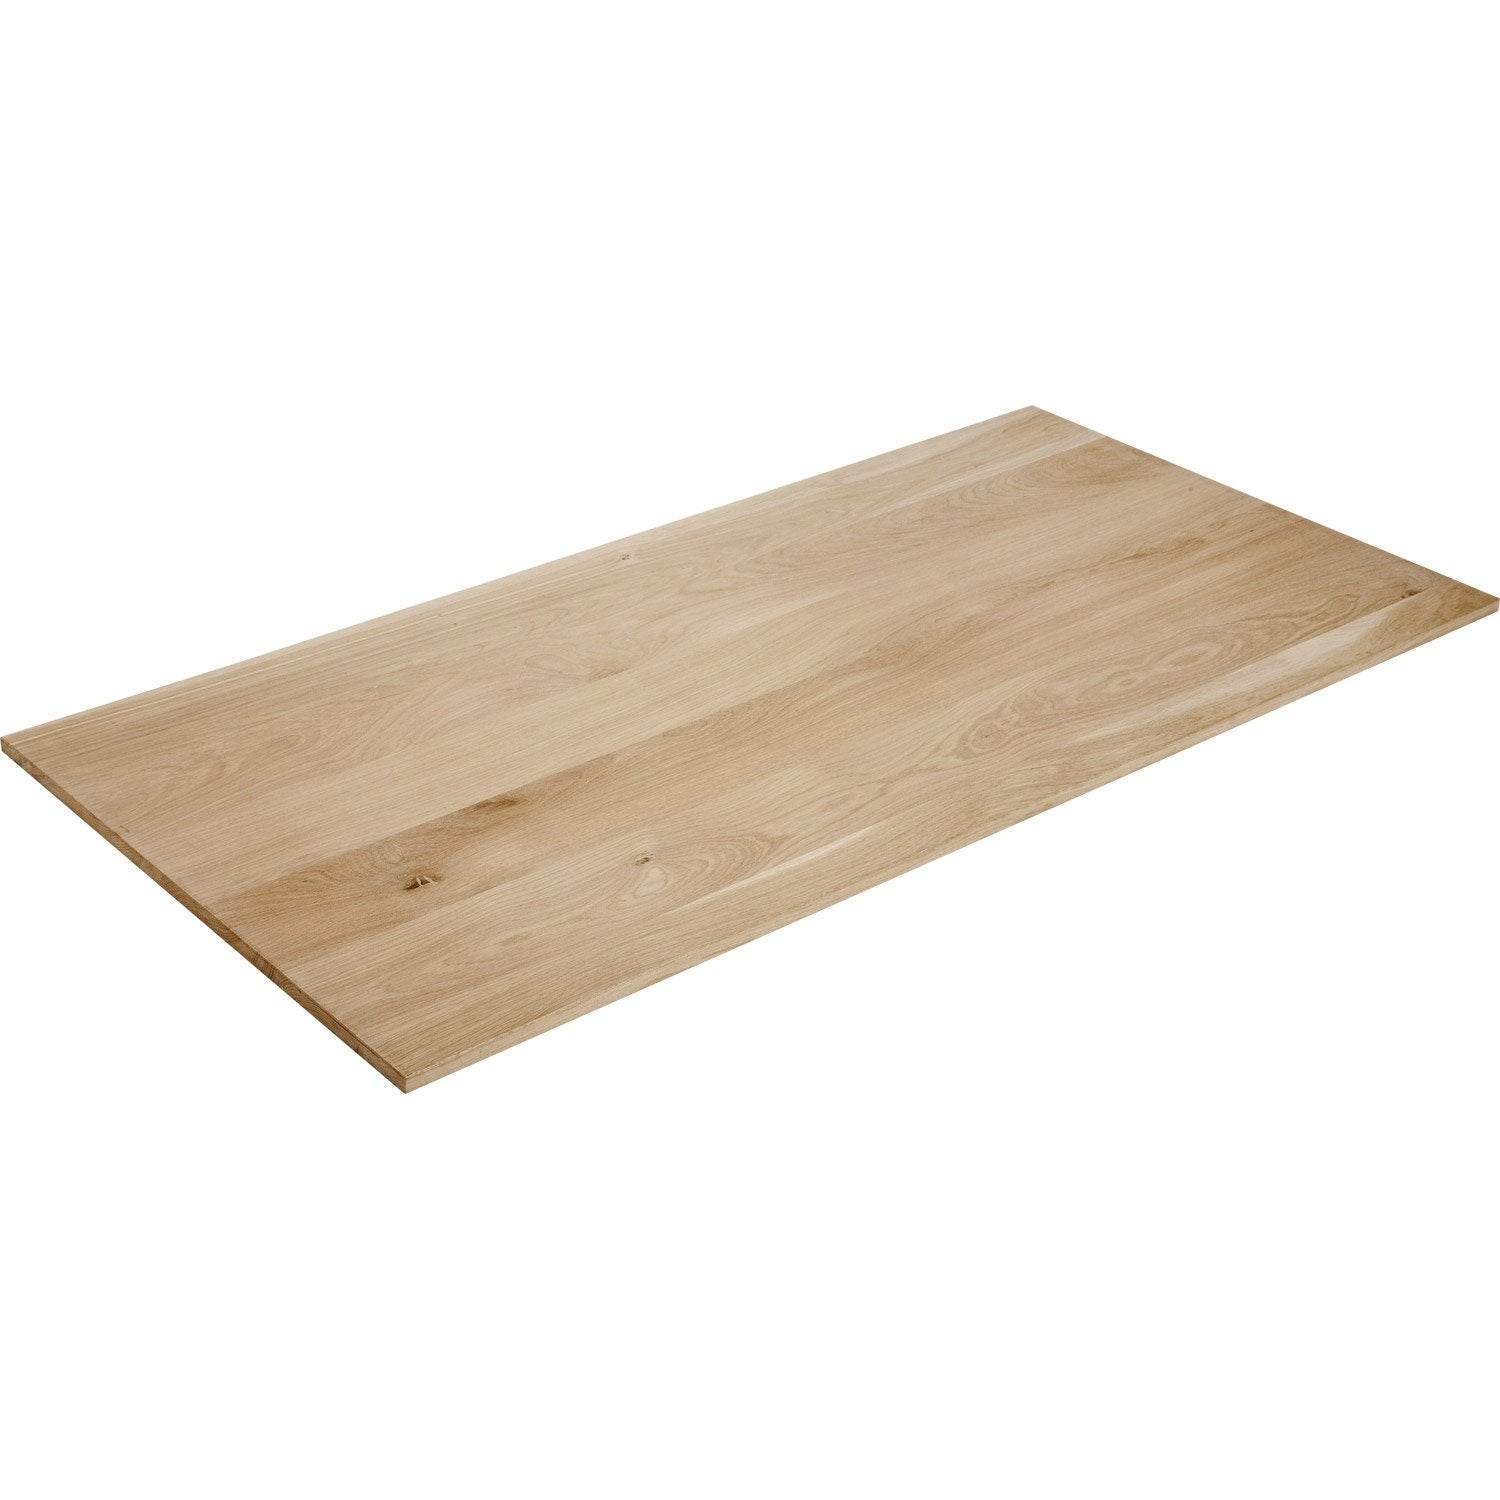 Plateau de table ch ne pleine lame x cm x ep for Carrelage 80 x 80